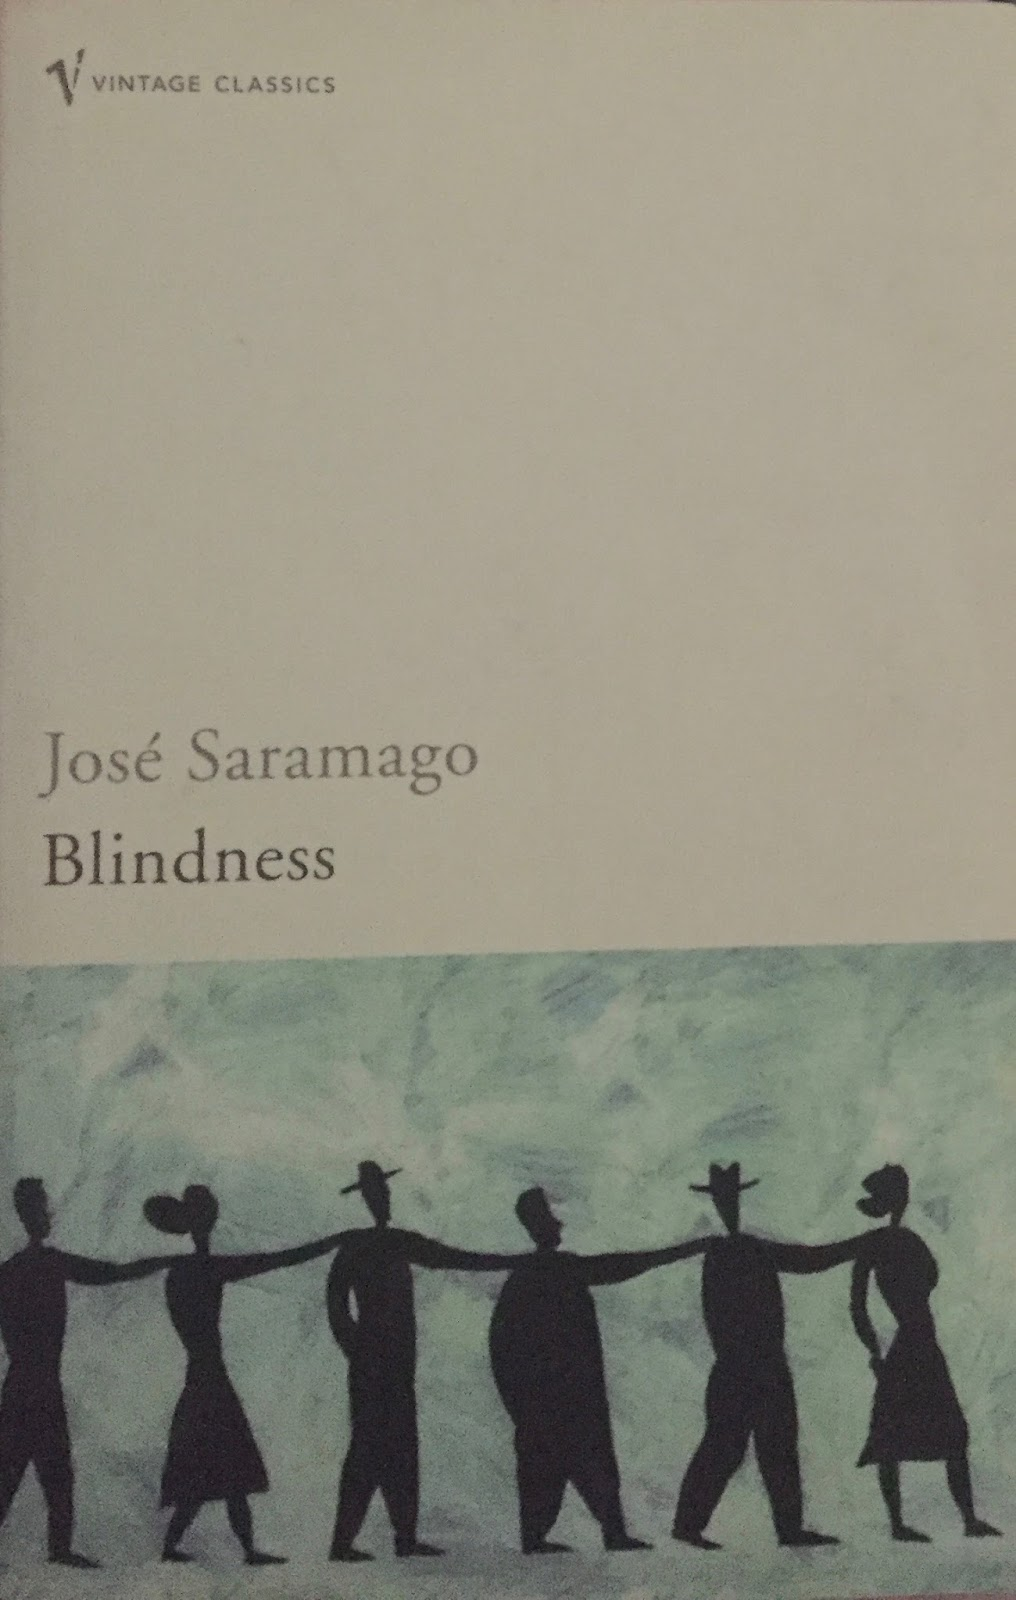 jose saramago essay on blindness Essay about blindness  being teached about blindness have blindness movie times, by jose saramago prevent blindness such blindness innovation and asia.